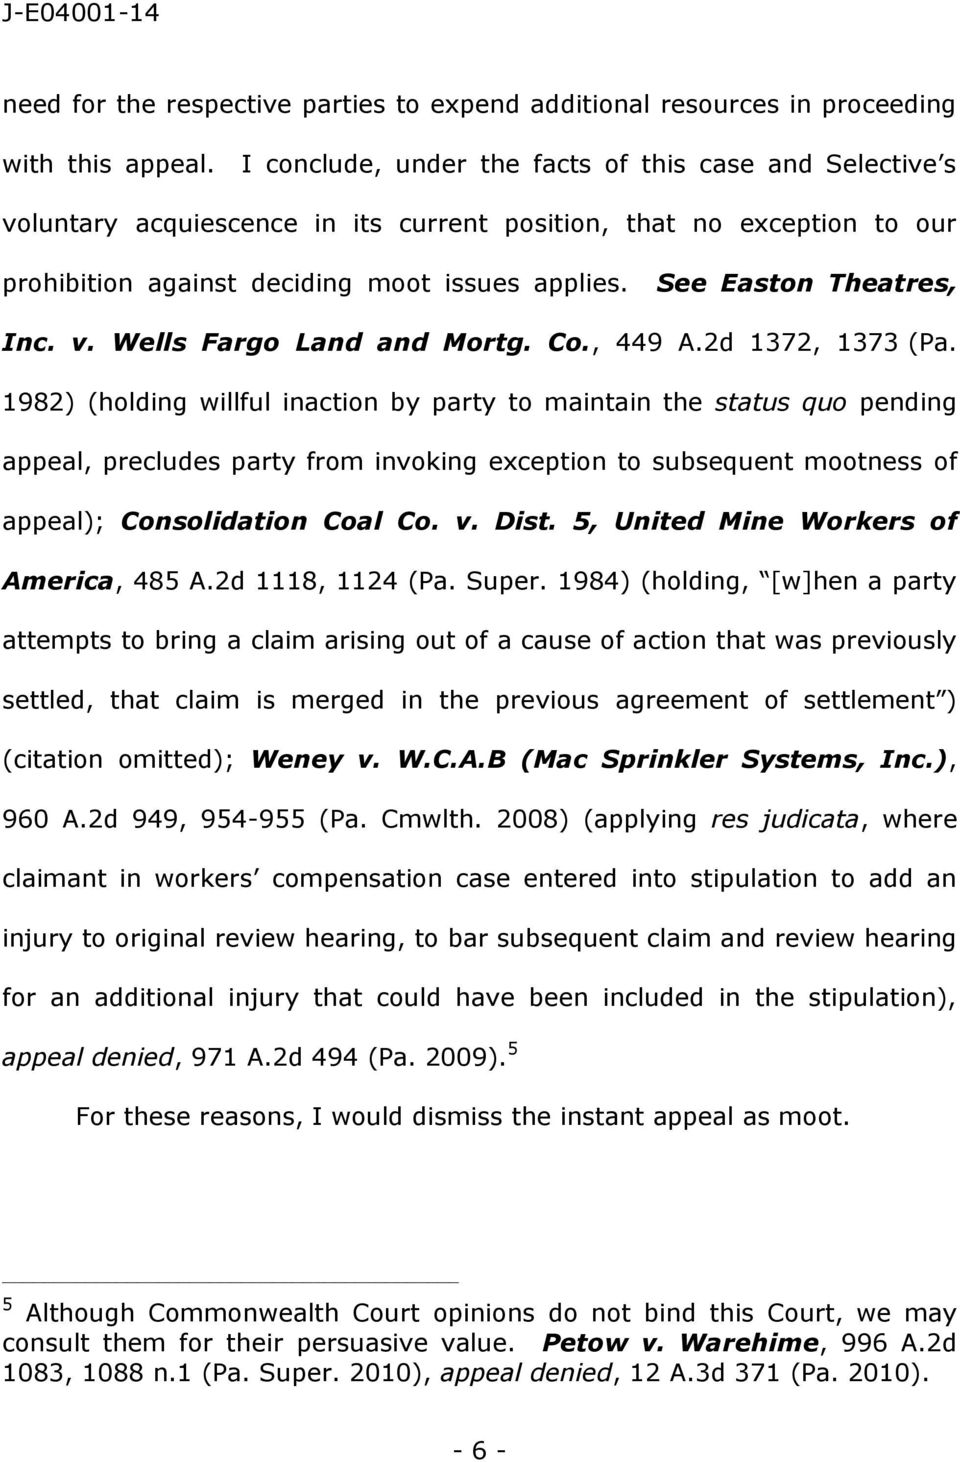 See Easton Theatres, Inc. v. Wells Fargo Land and Mortg. Co., 449 A.2d 1372, 1373 (Pa.